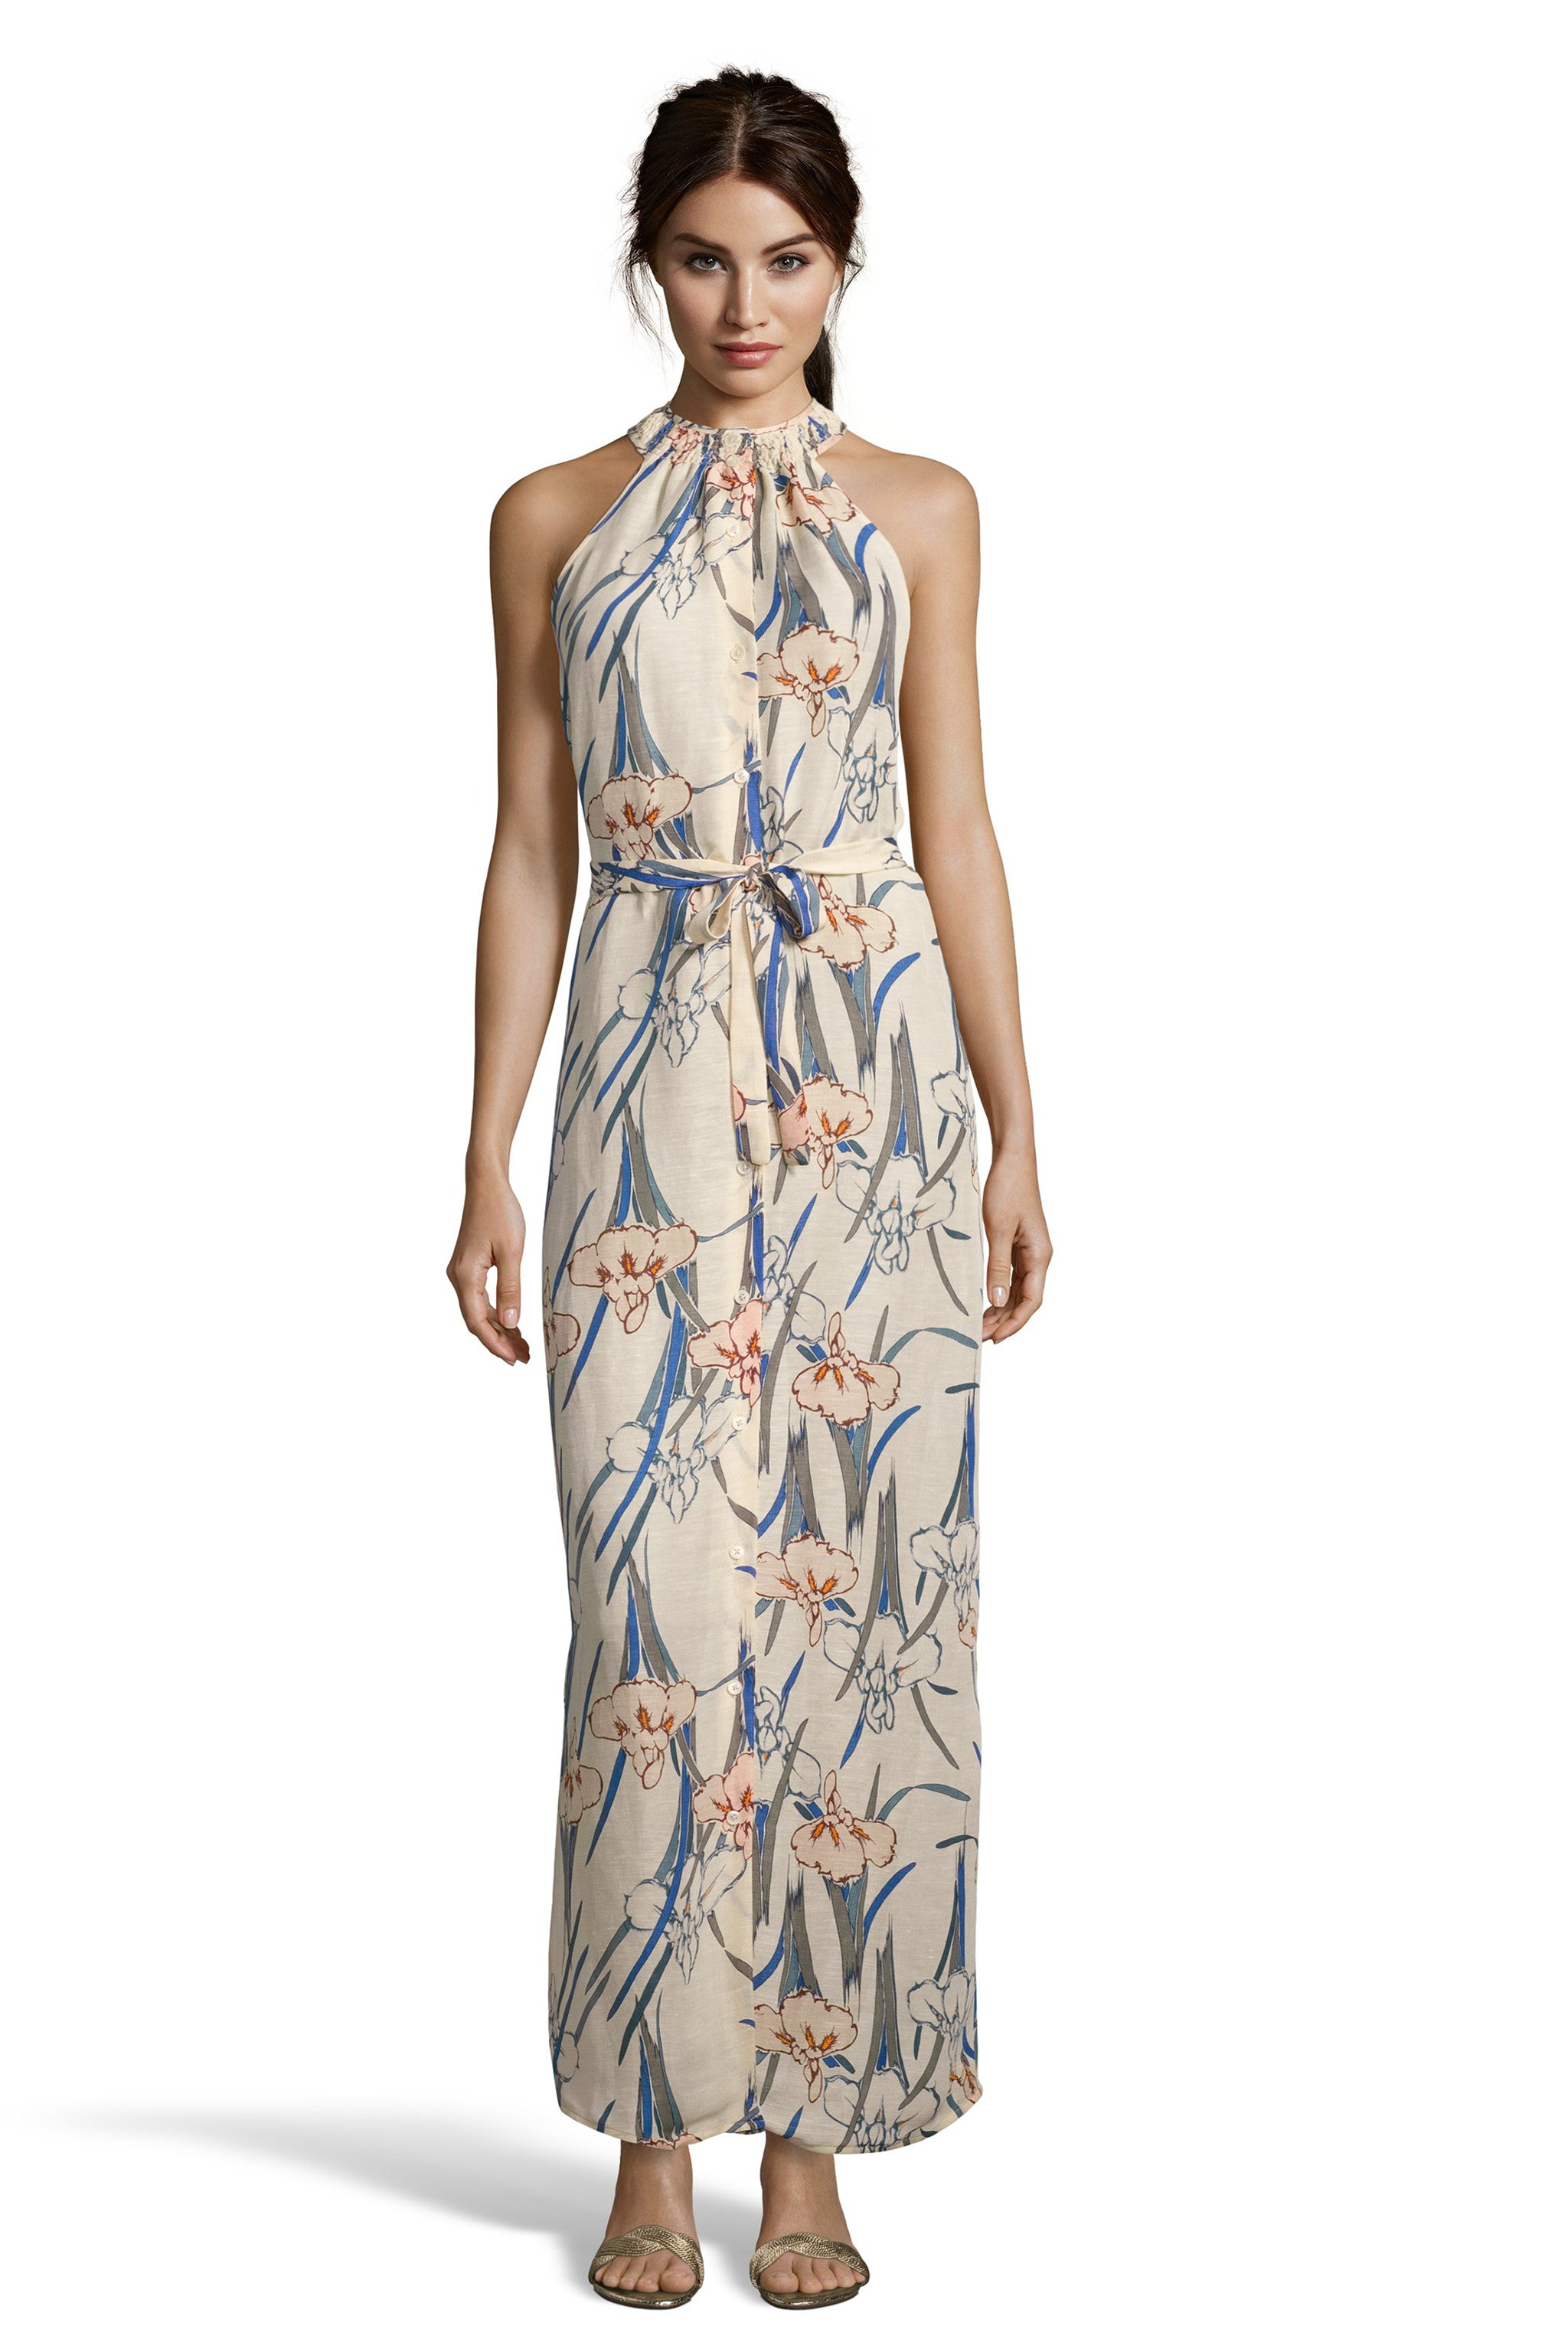 The Classic Sleeveless Maxi Dress